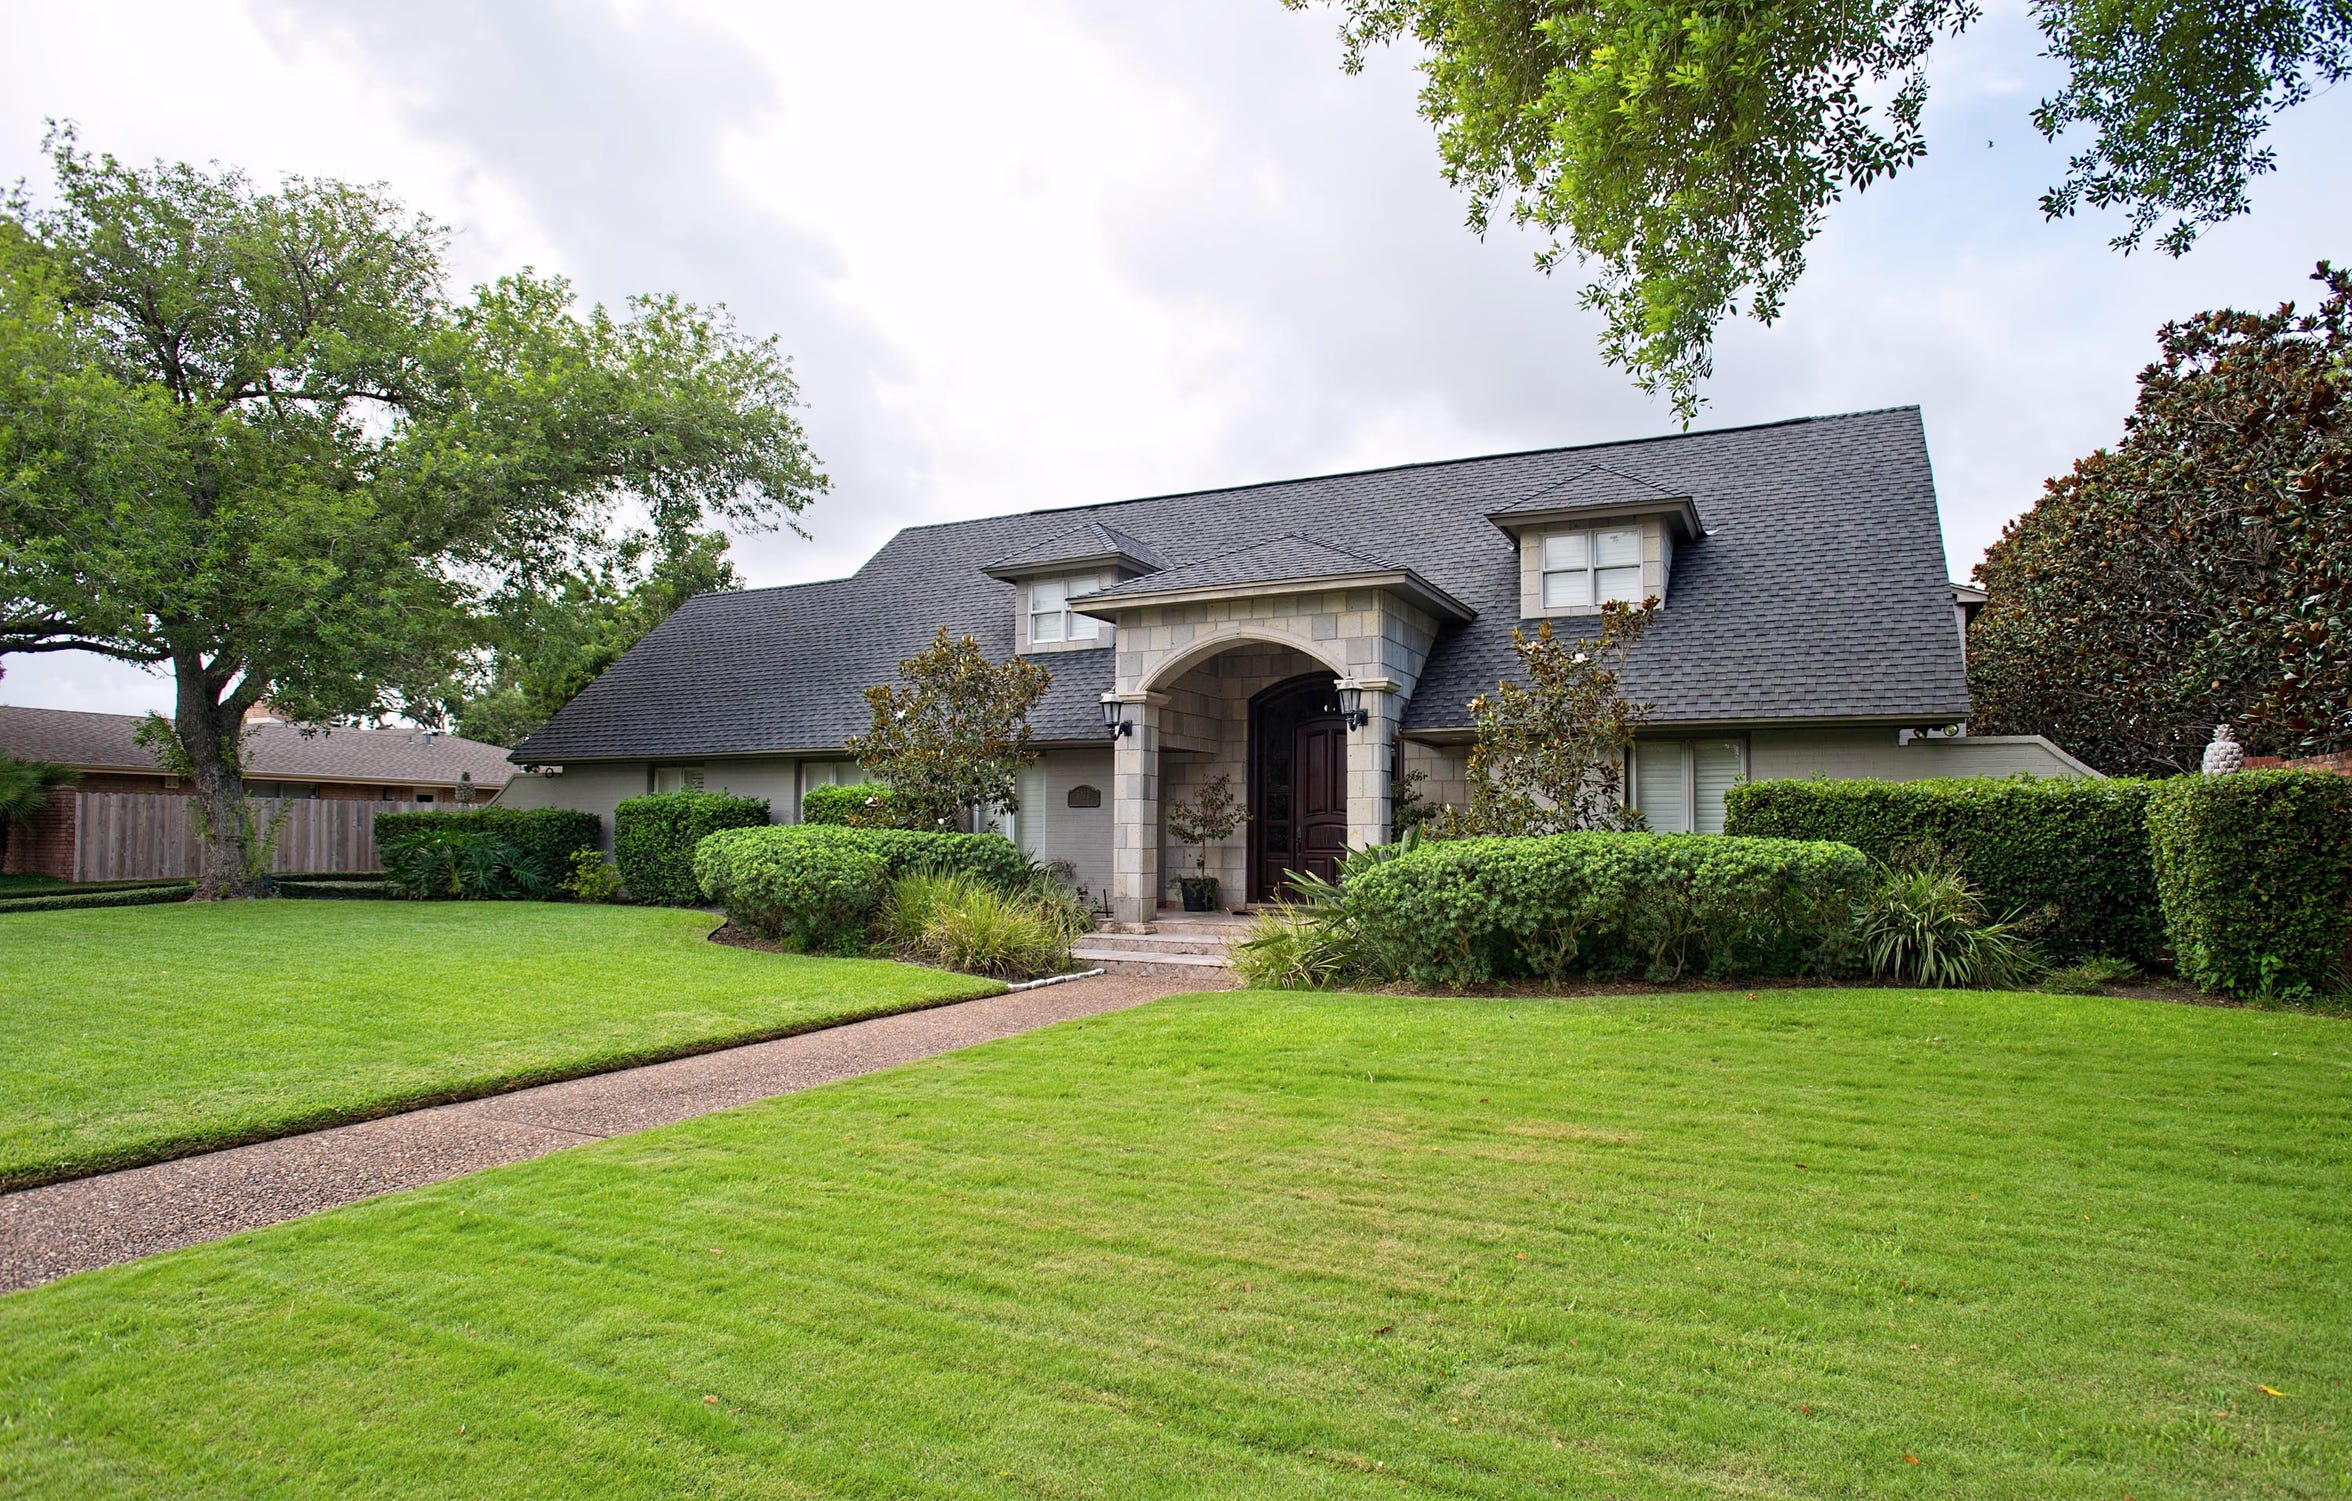 5242 Greenbriar Drive is situated on an oversized lot on the 7th fairway of the Corpus Christi Country Club golf course